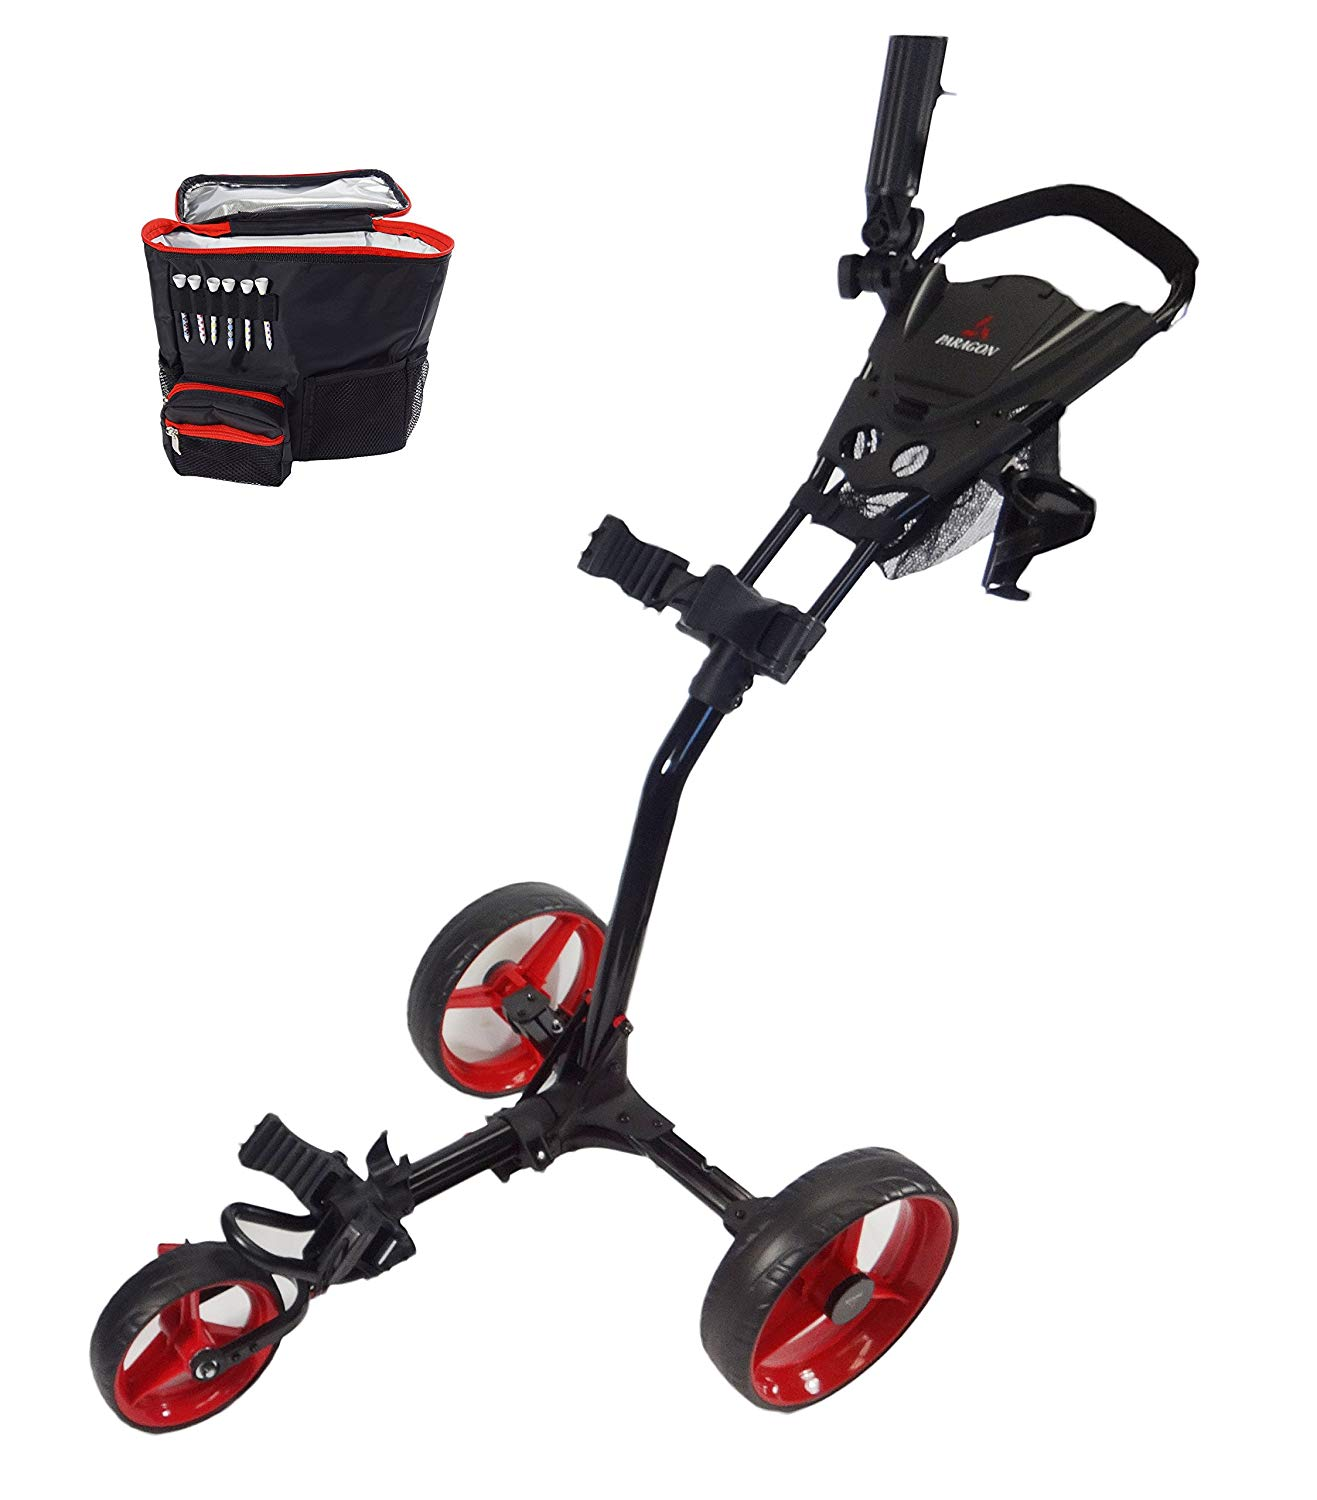 Paragon 3-wheelie Folding 3 Wheel Push - Pull Cart:Free Cooler Bag (Red:Black)